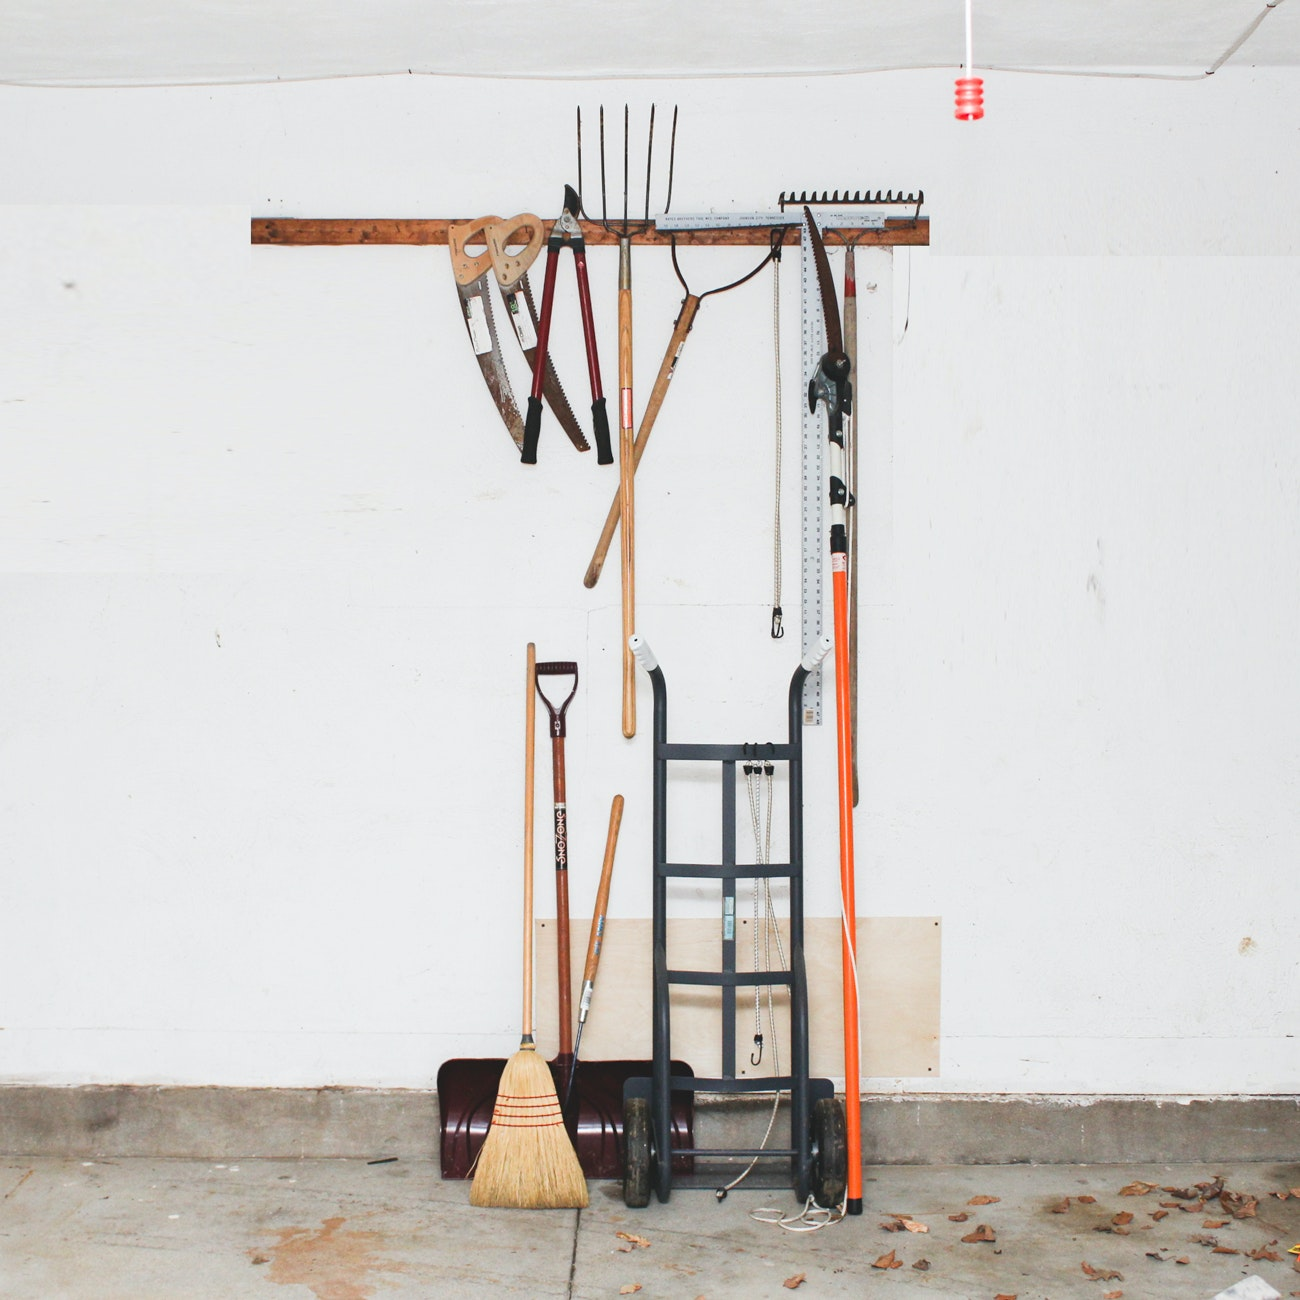 Extension Ladder and Assorted Lawn Tools